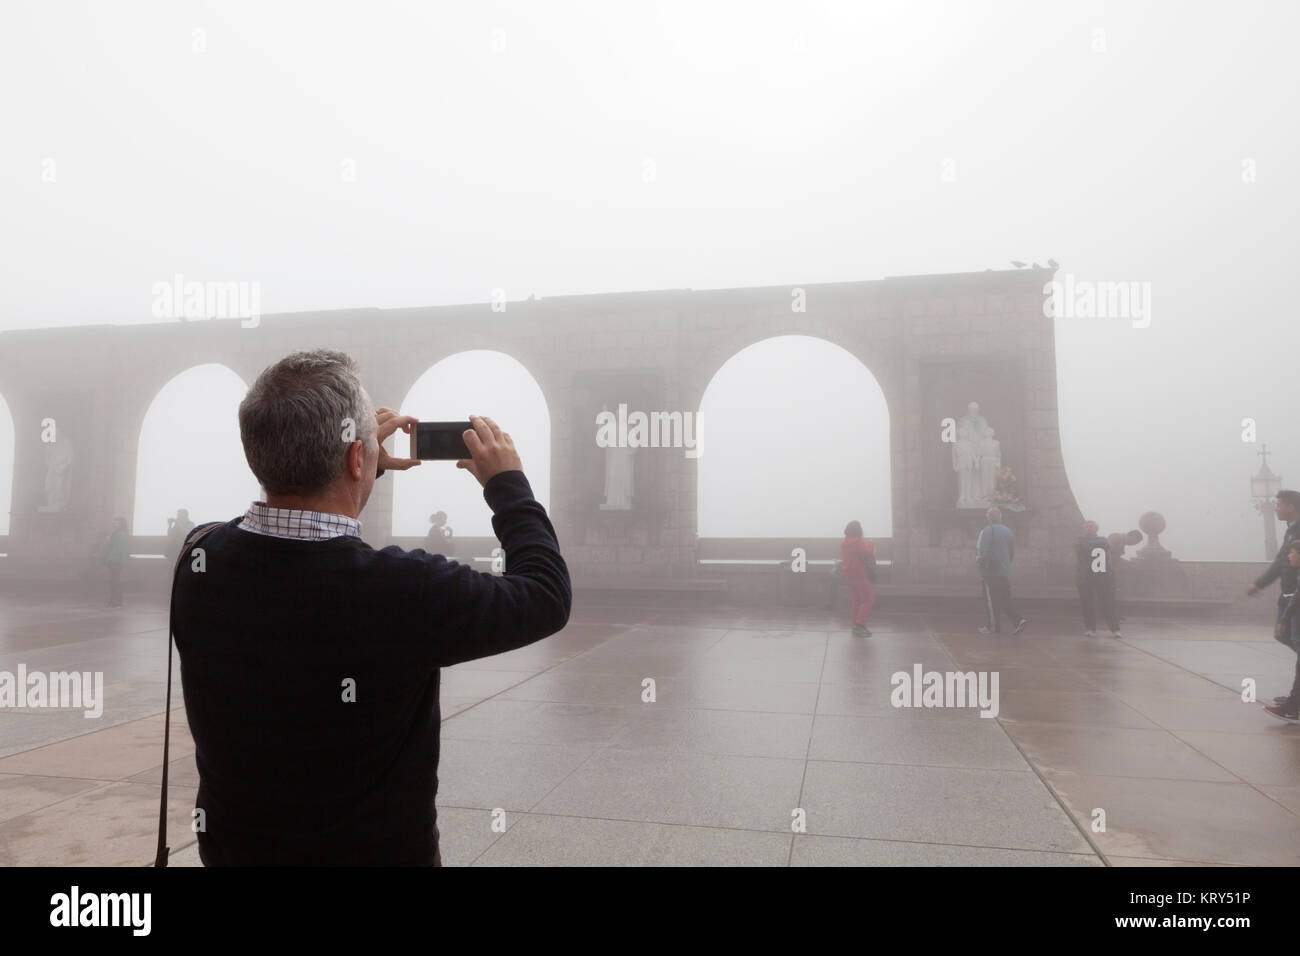 Man taking a photograph in mist in Barcelona - Stock Image